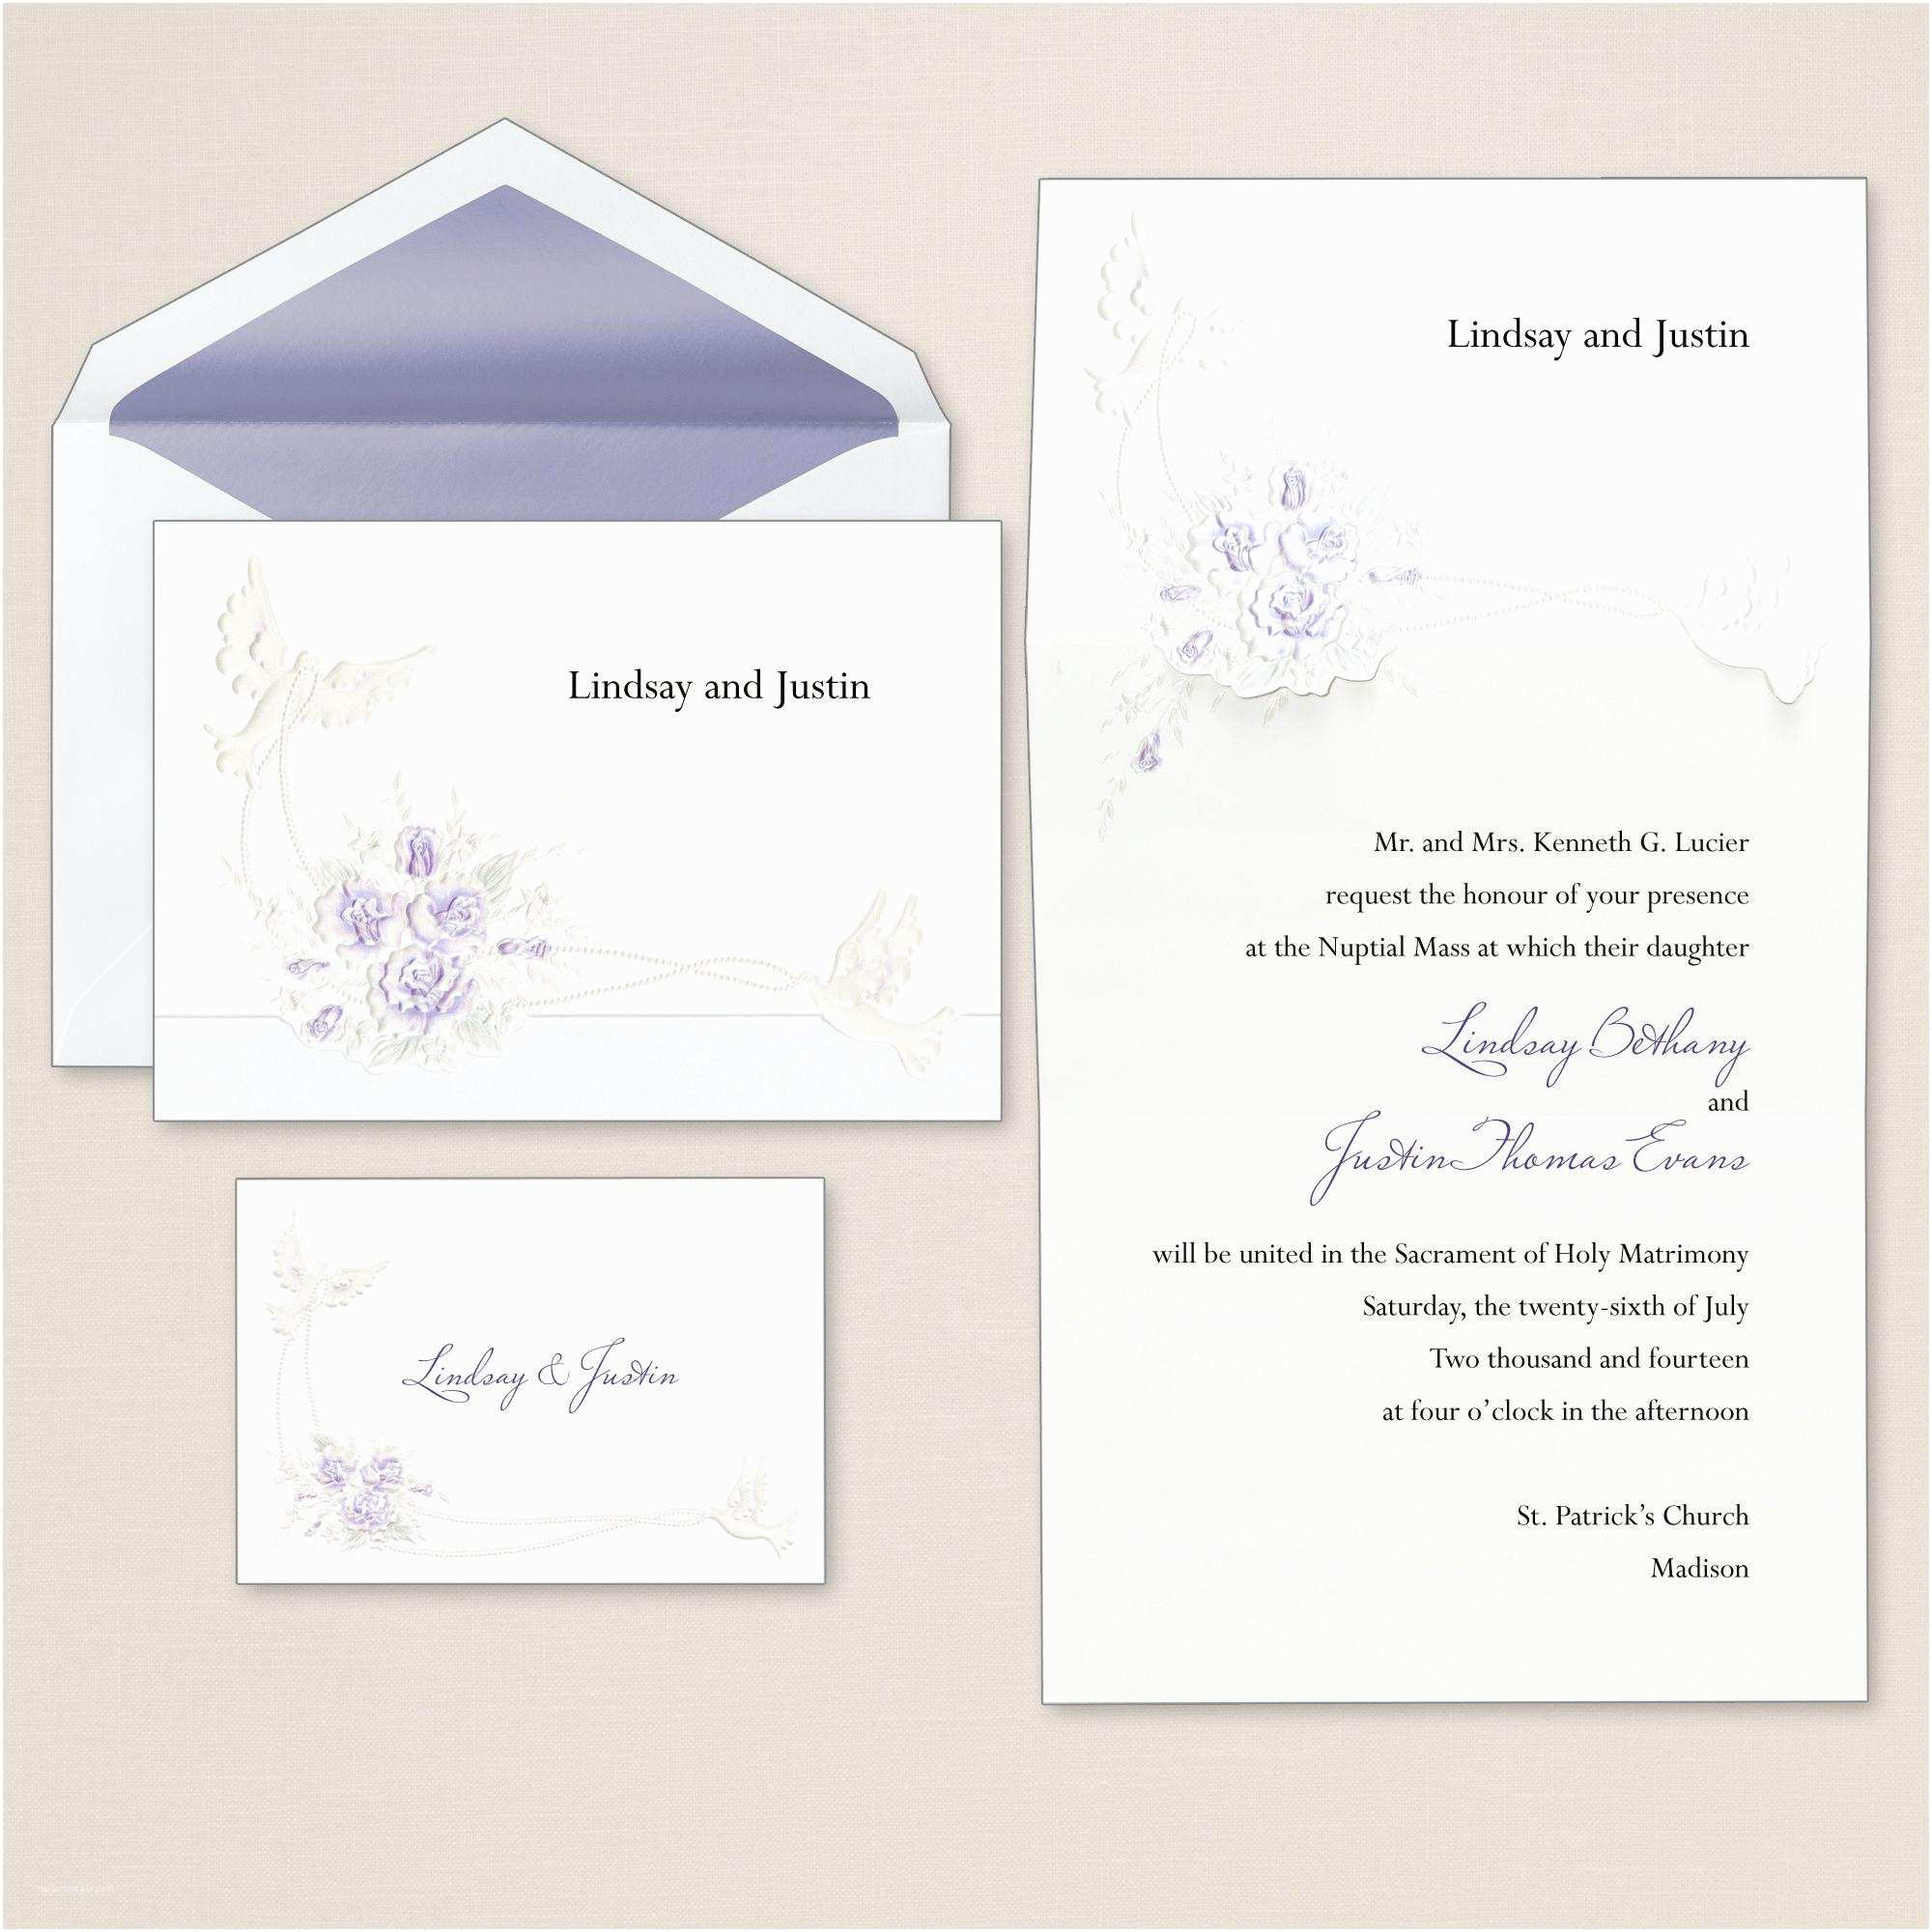 Sample Wedding Invitations Wedding Invitation Wedding Invitations and Response